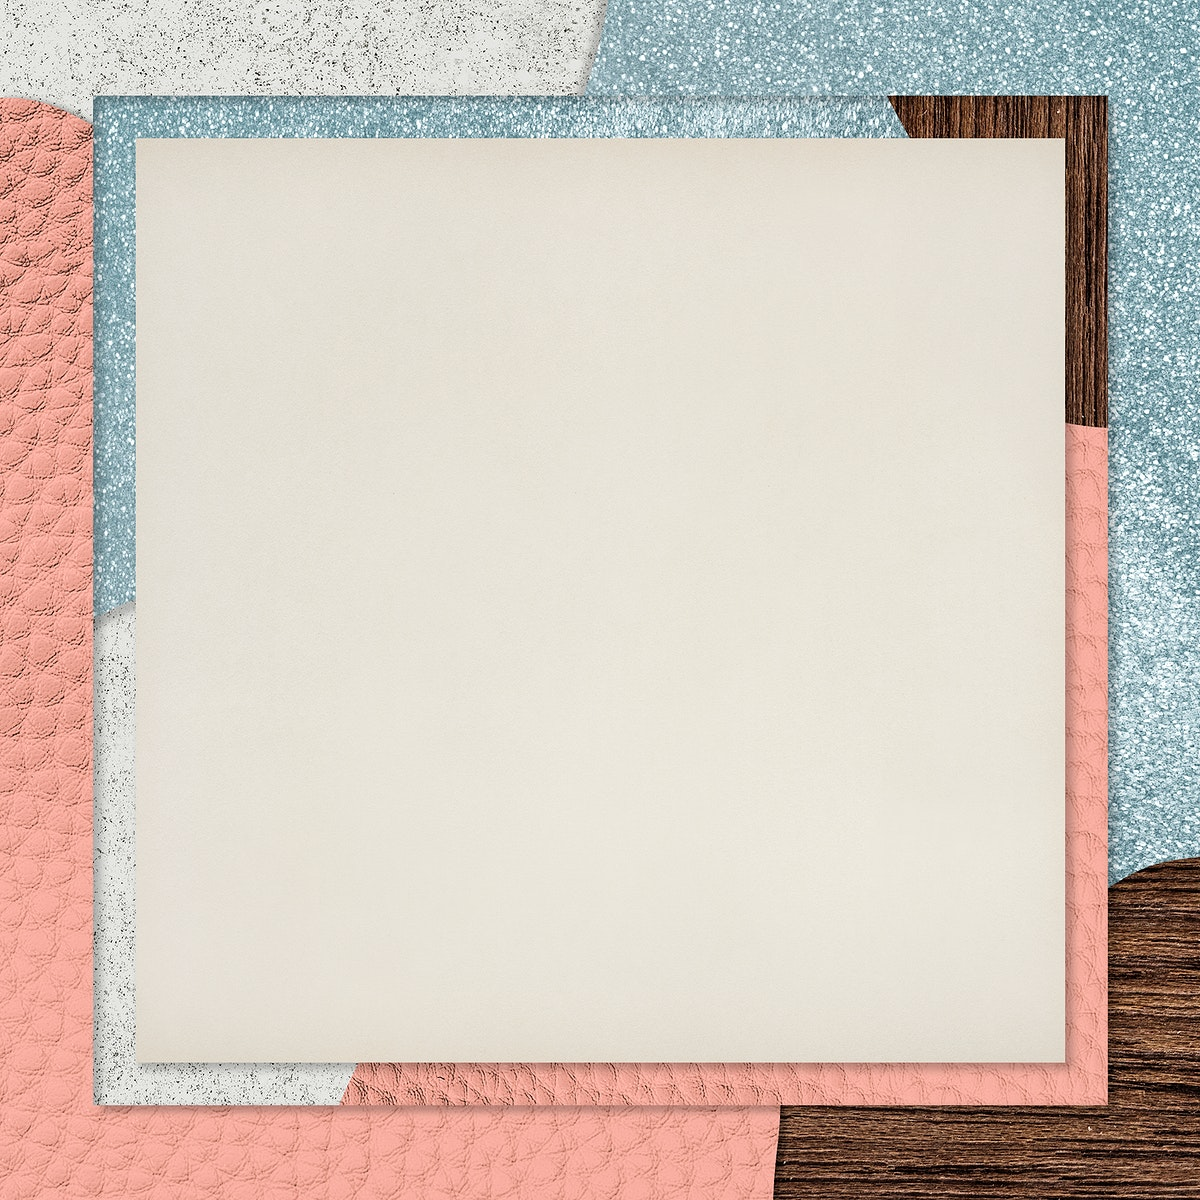 Frame on pink and blue collage textured background vector